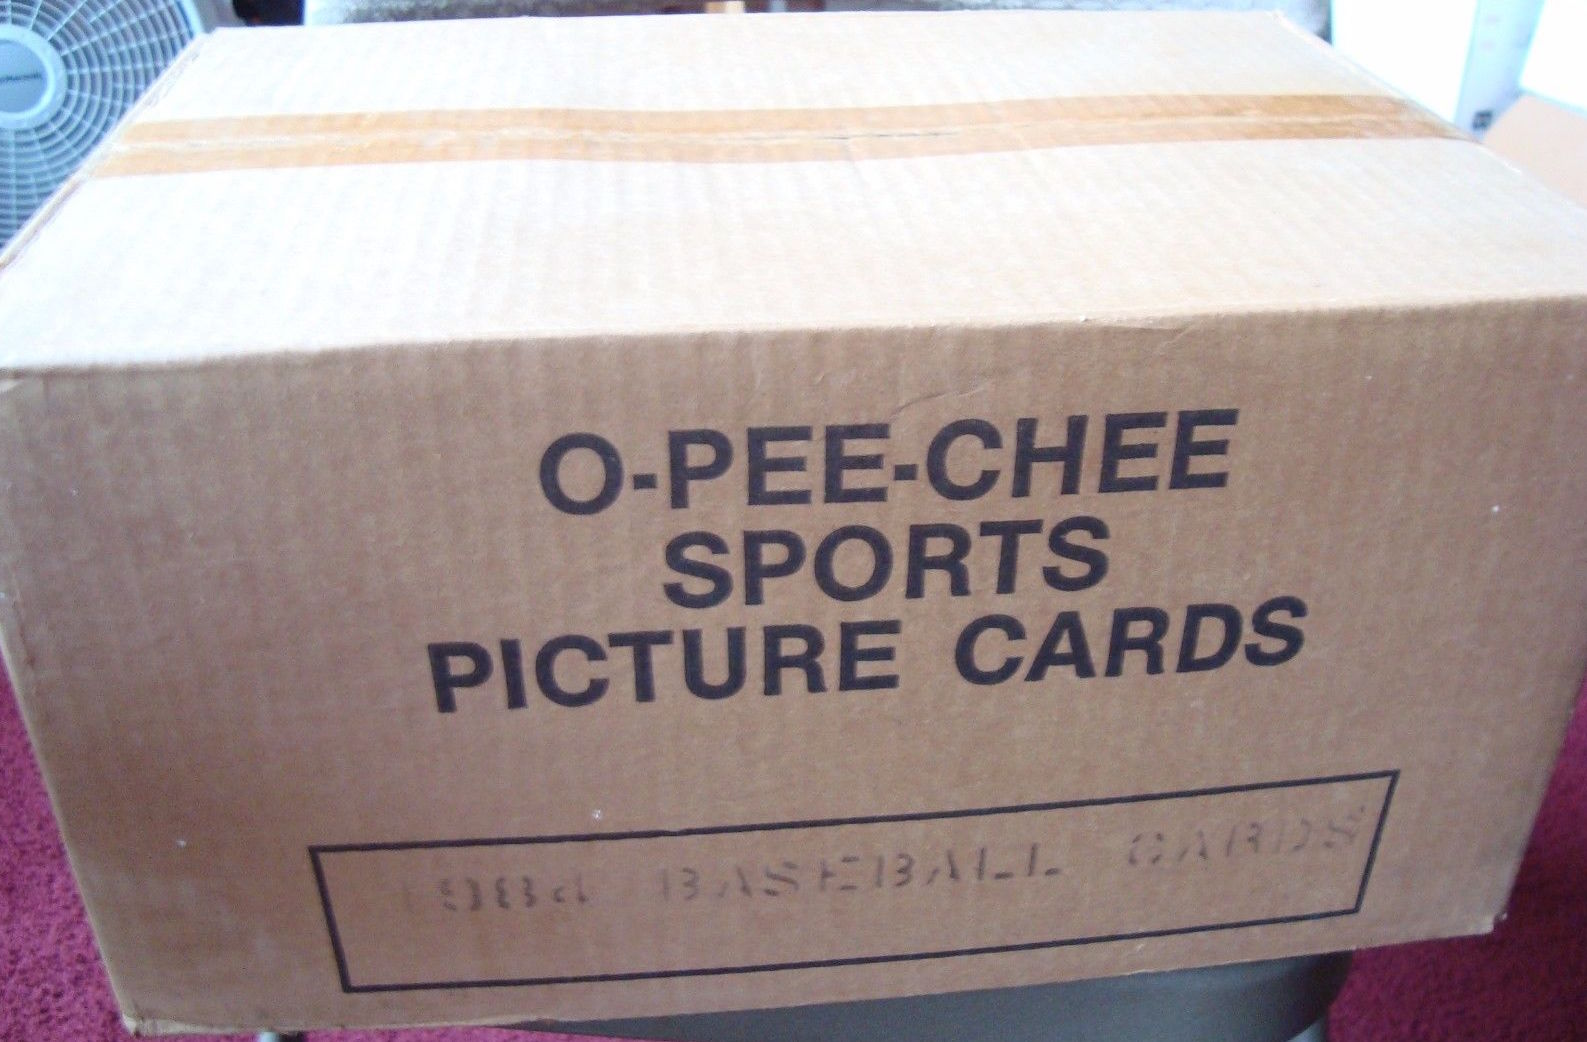 1984 O-Pee-Chee Baseball Cards Unopened Vending Case